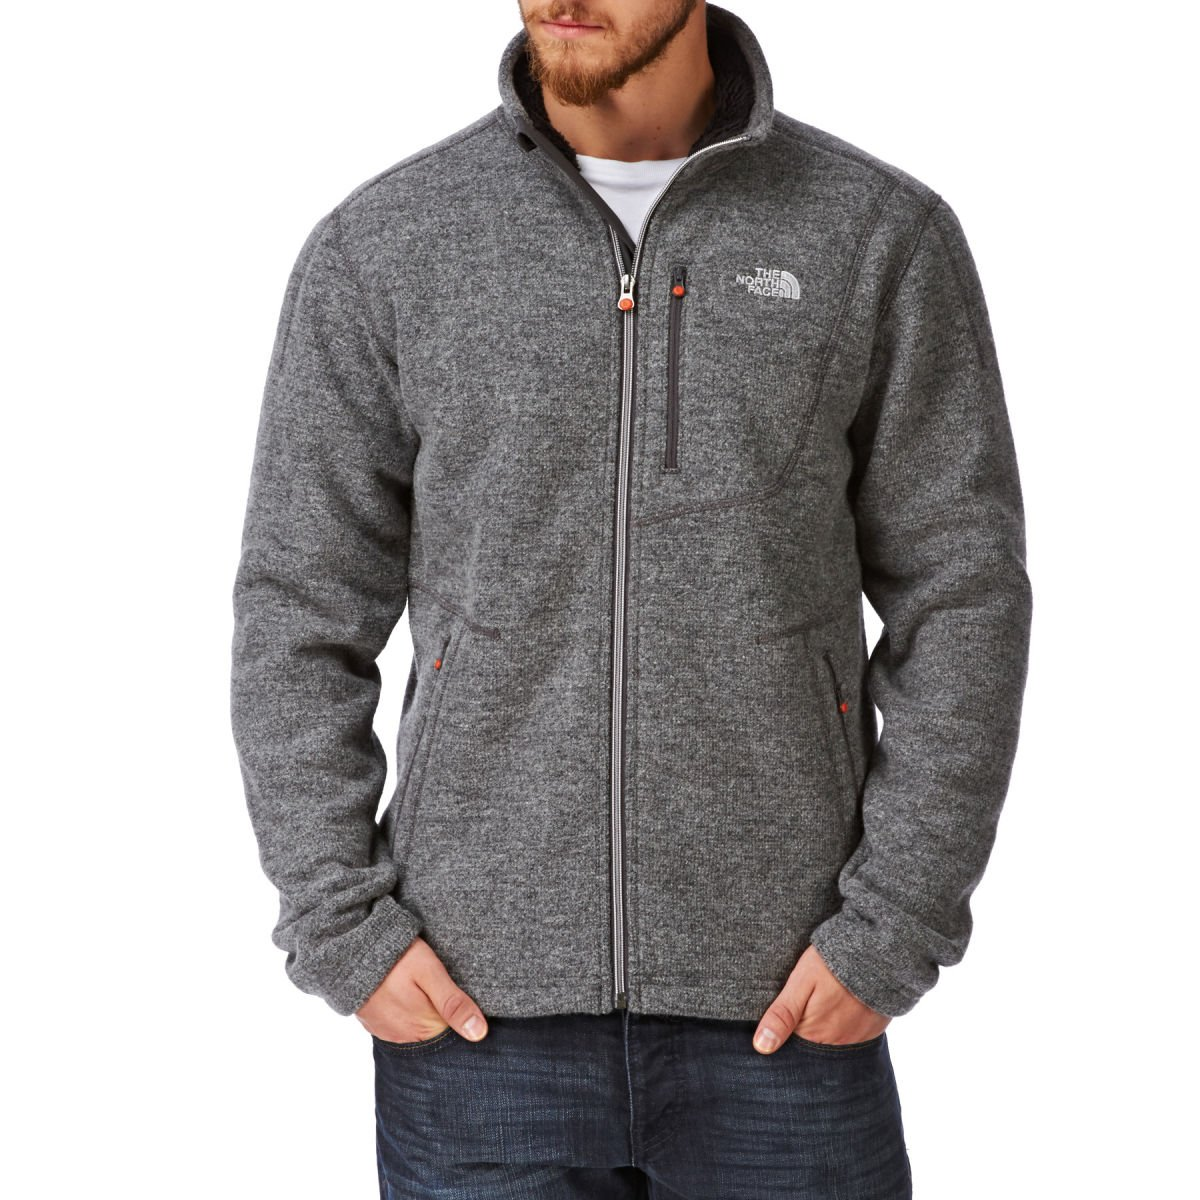 THE NORTH FACE Herren Fleecejacke Zermatt Full Zip günstig kaufen